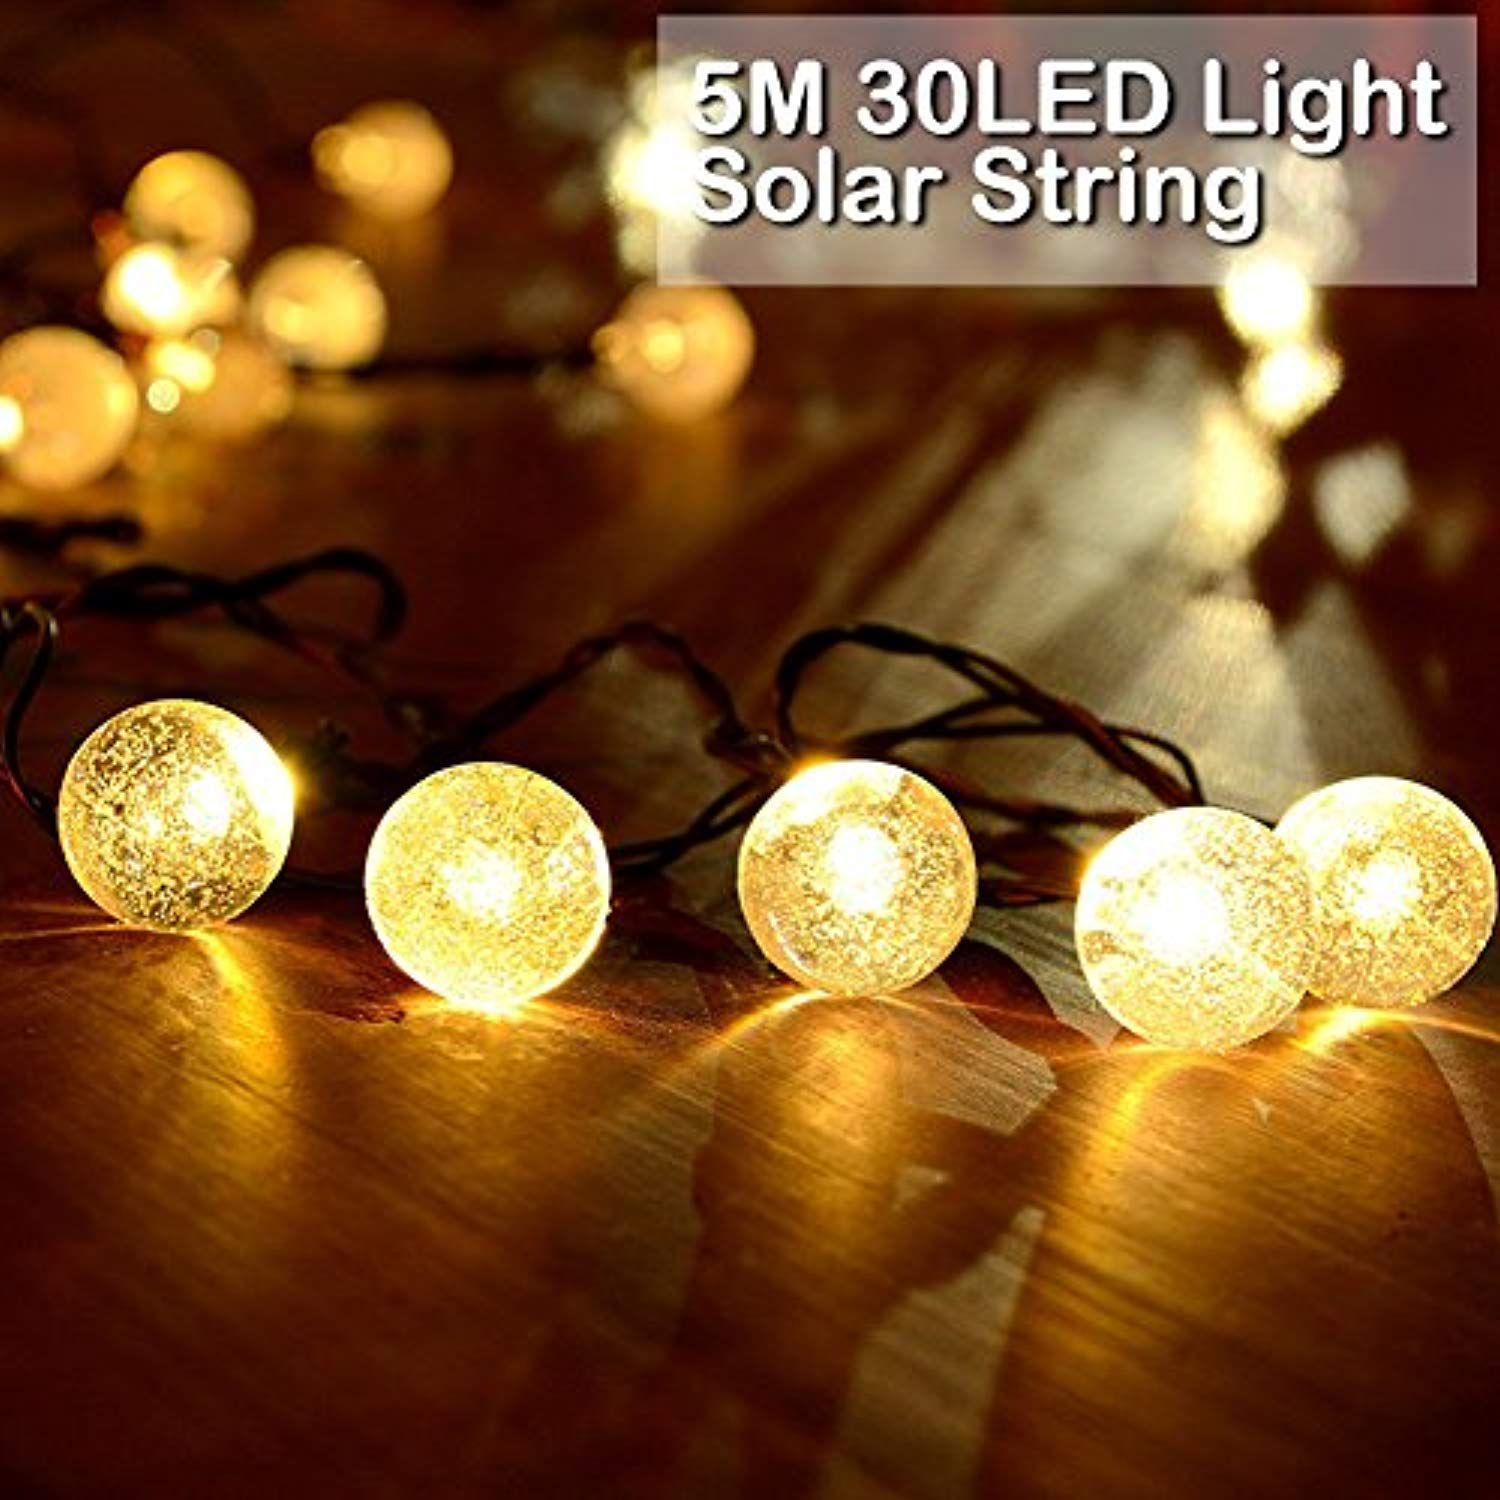 Garden Lighting Equipment patio lights 50 LED Solar Powered Crystal Ball Fairy String Light Garden Party Xmas Light 10M